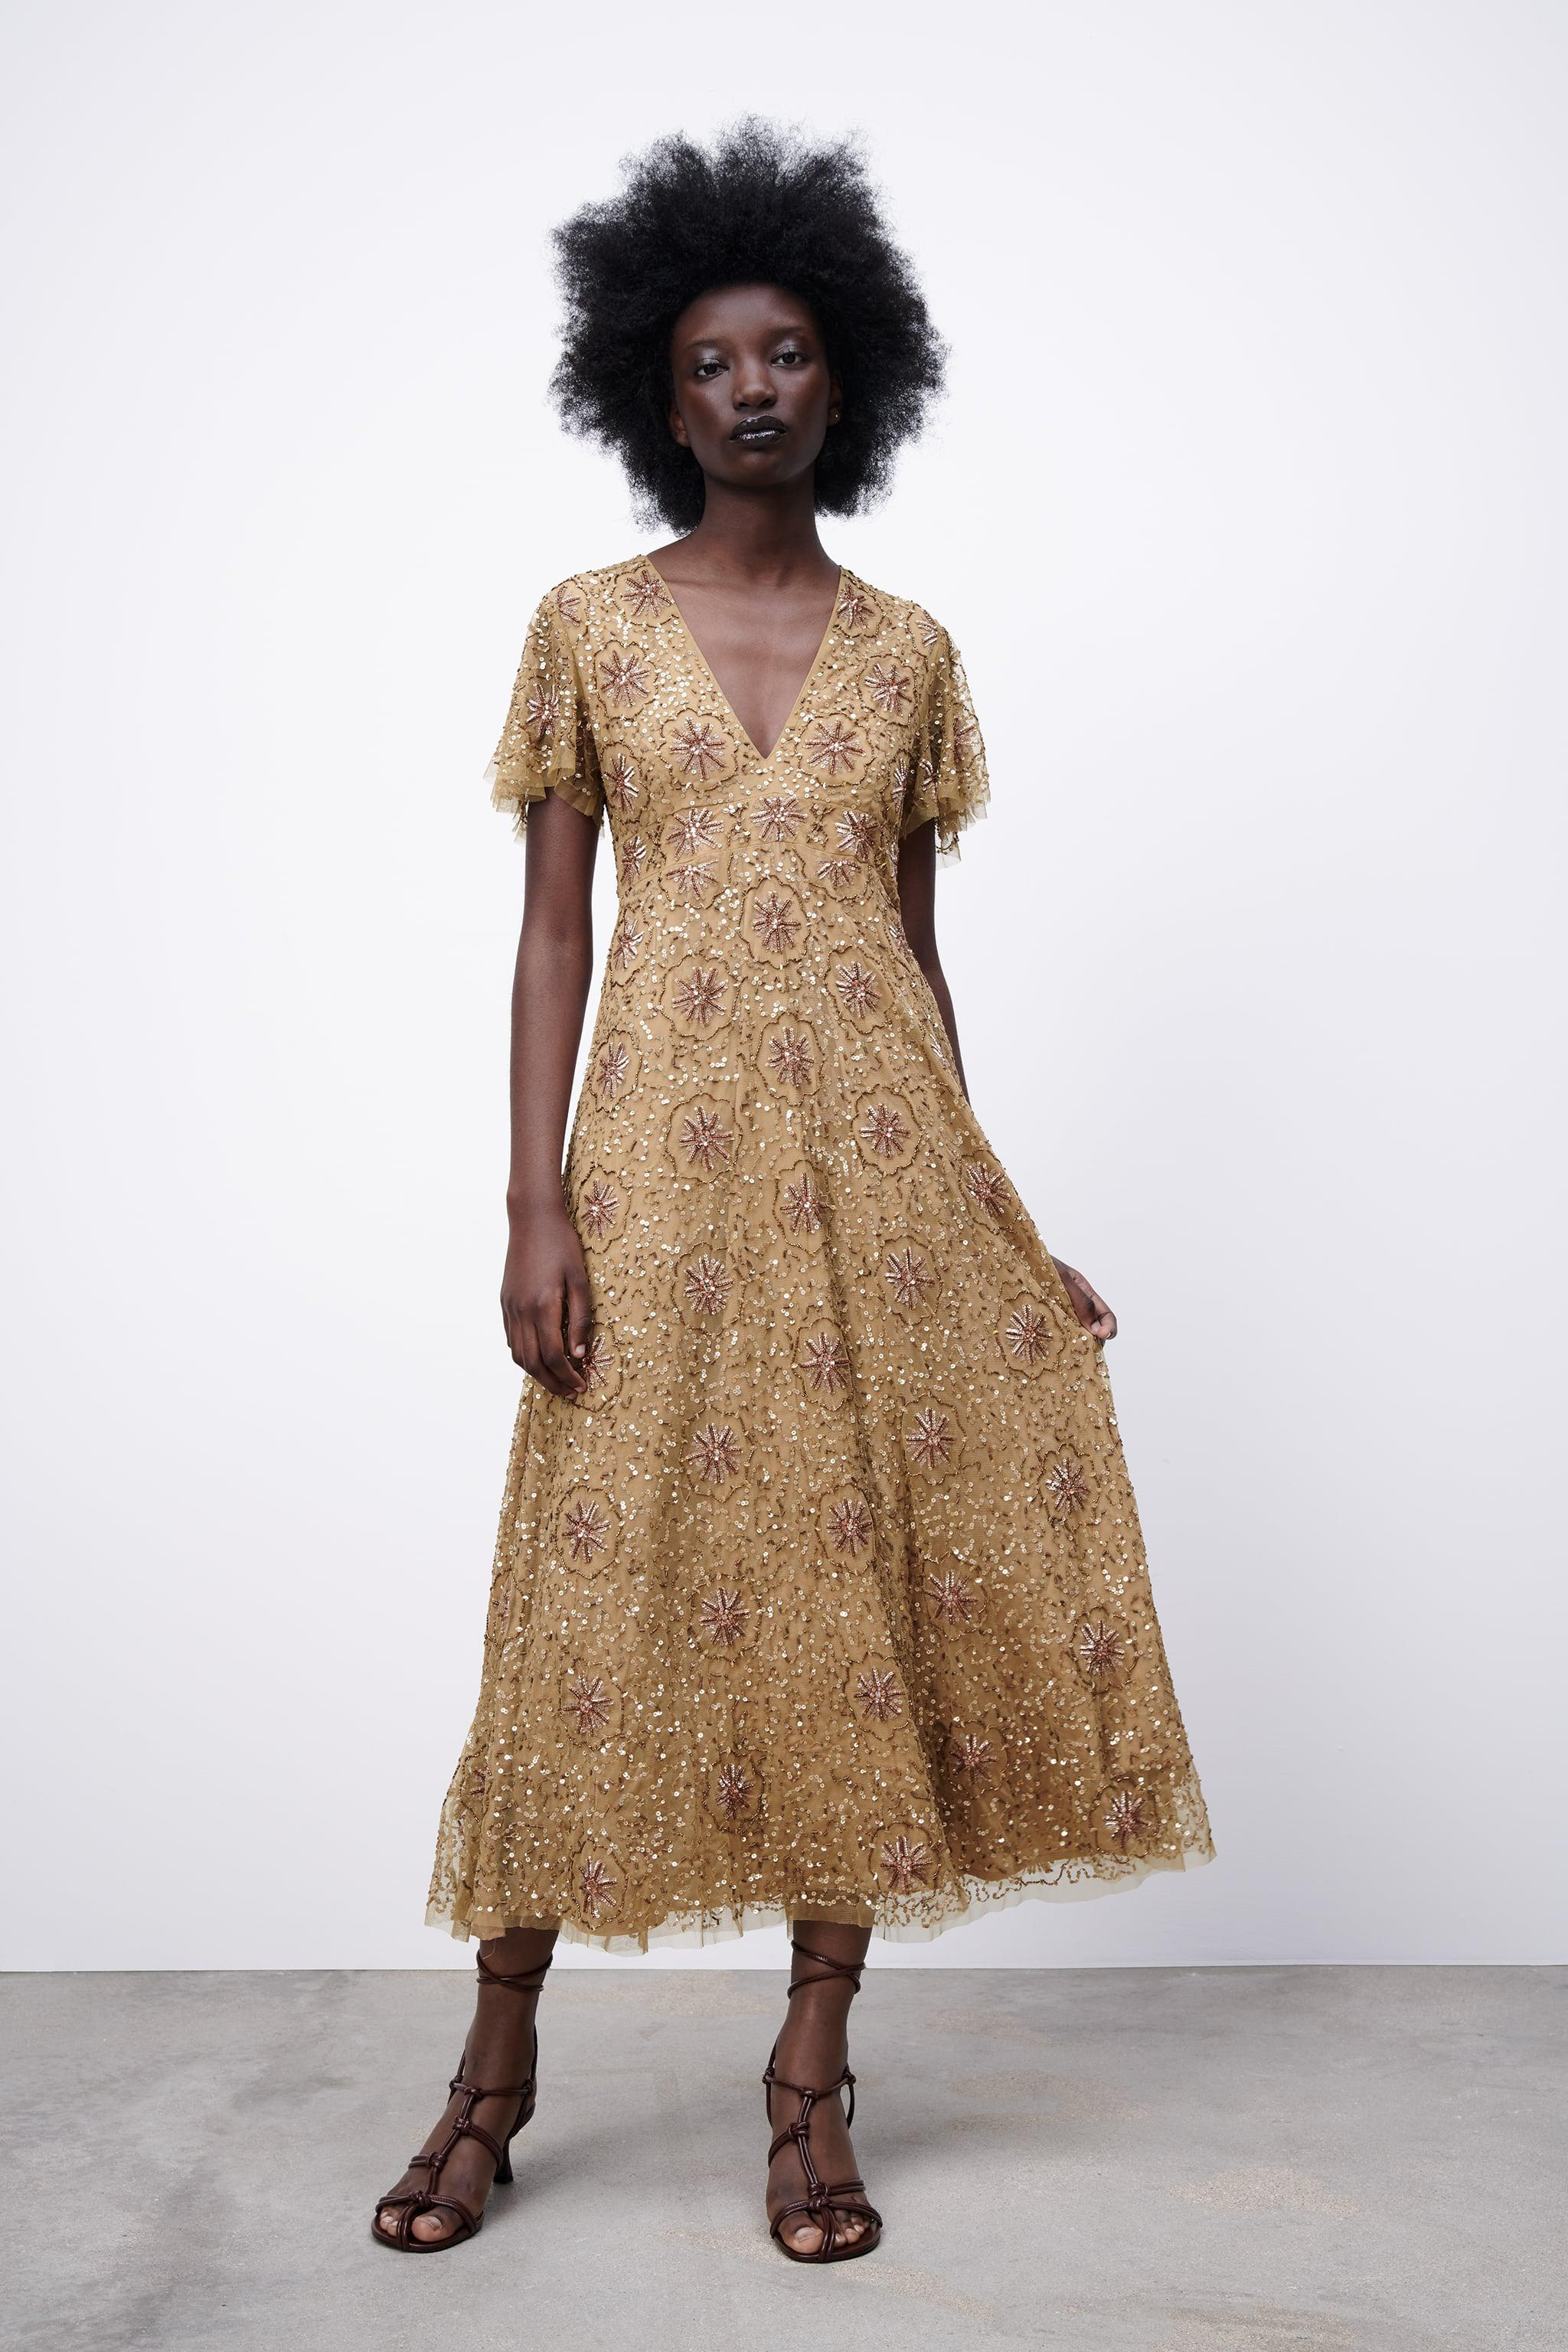 BEADED SPECIAL EDITION KNIT DRESS